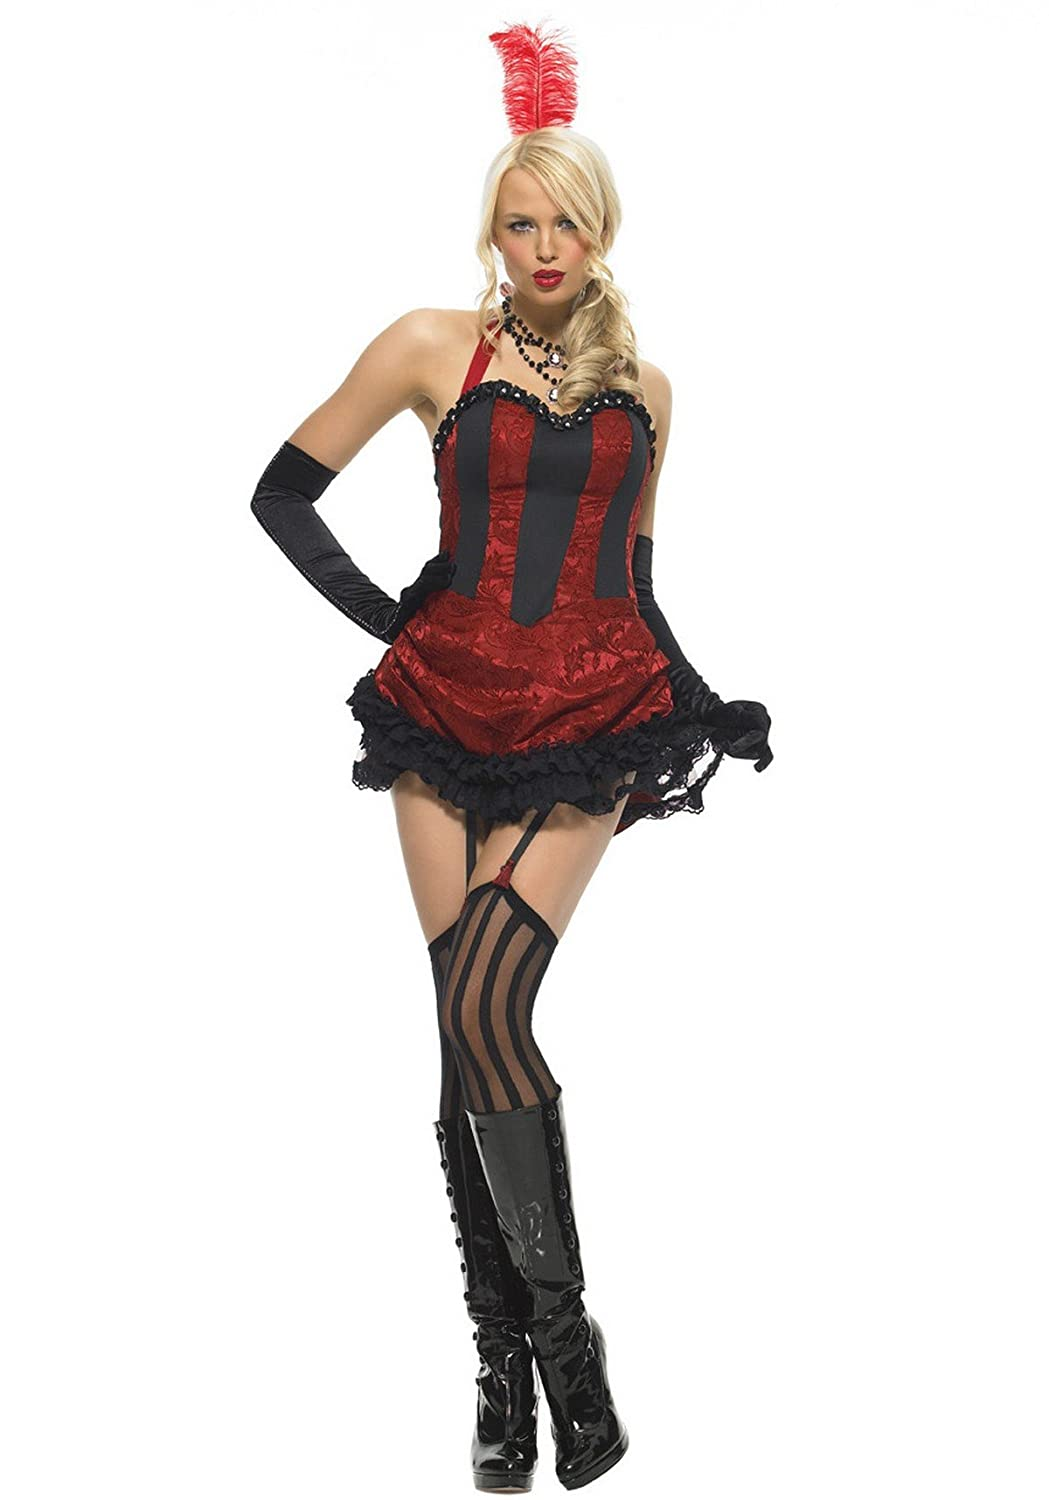 Leg Avenue Burlesque – Dancer Disfraz, Dress con Bustle Back – XL – Burdeos/Negro – 83426: Amazon.es: Salud y cuidado personal